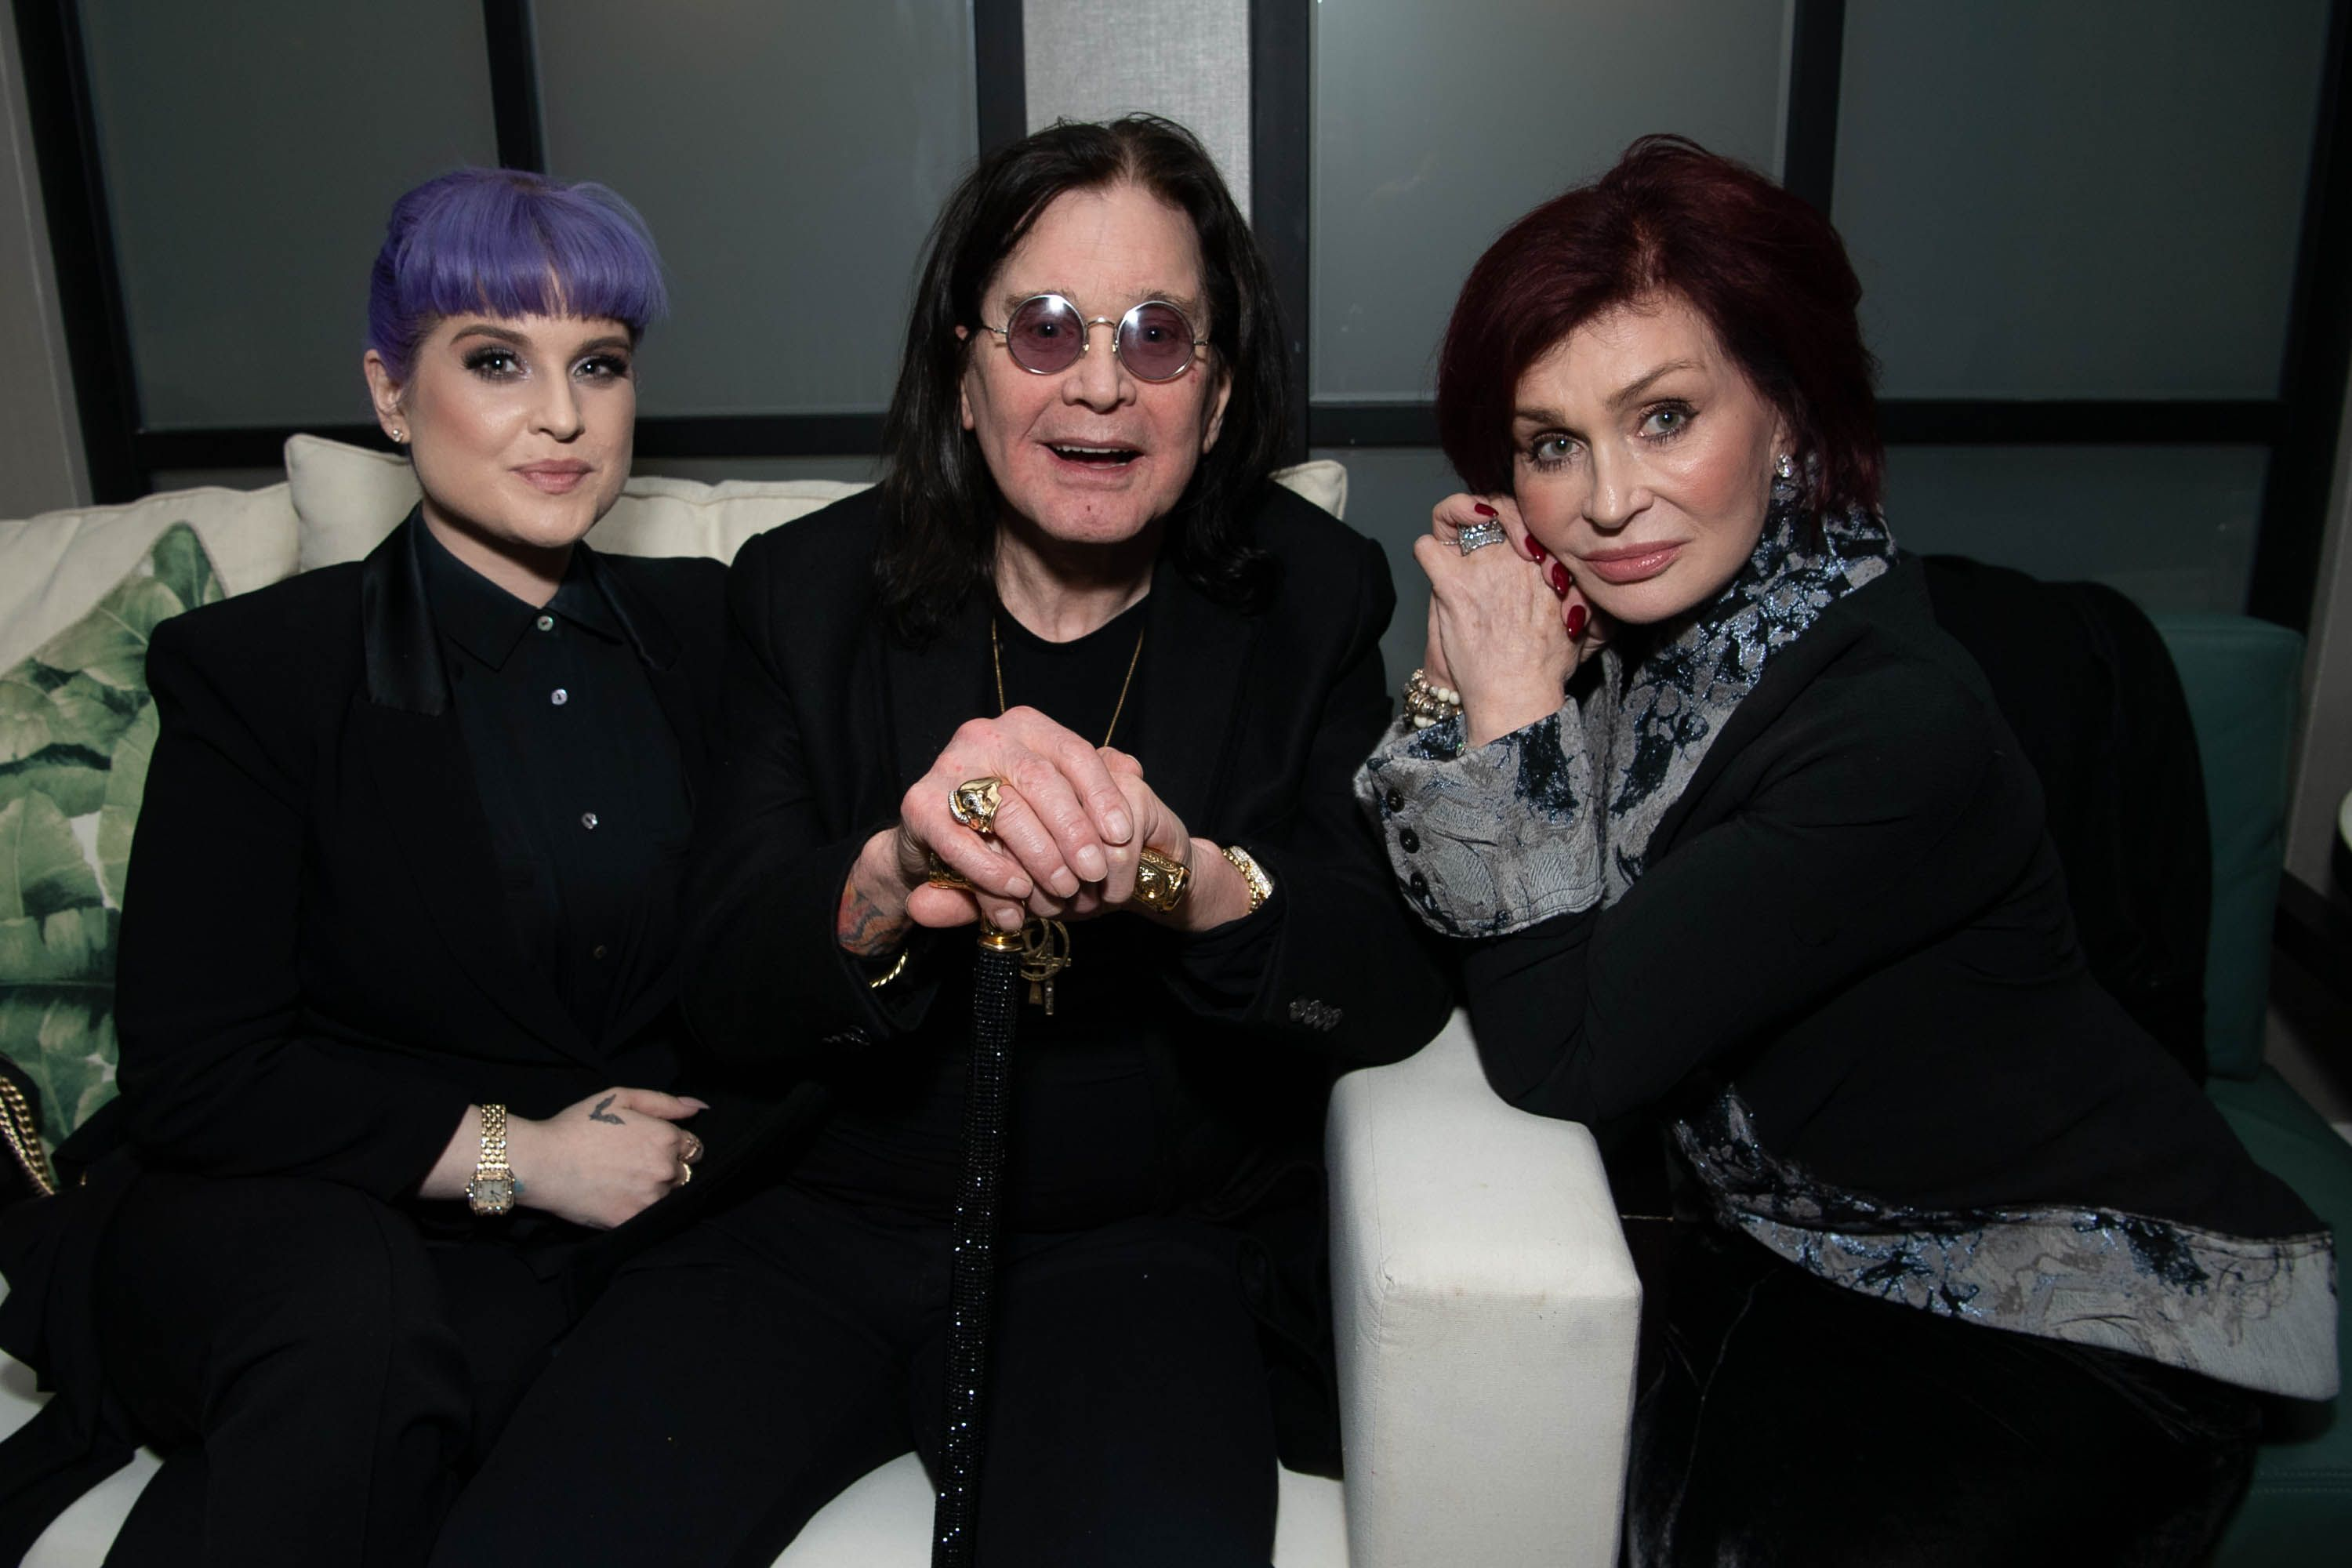 Ozzy Osbourne with his wife and daughter.